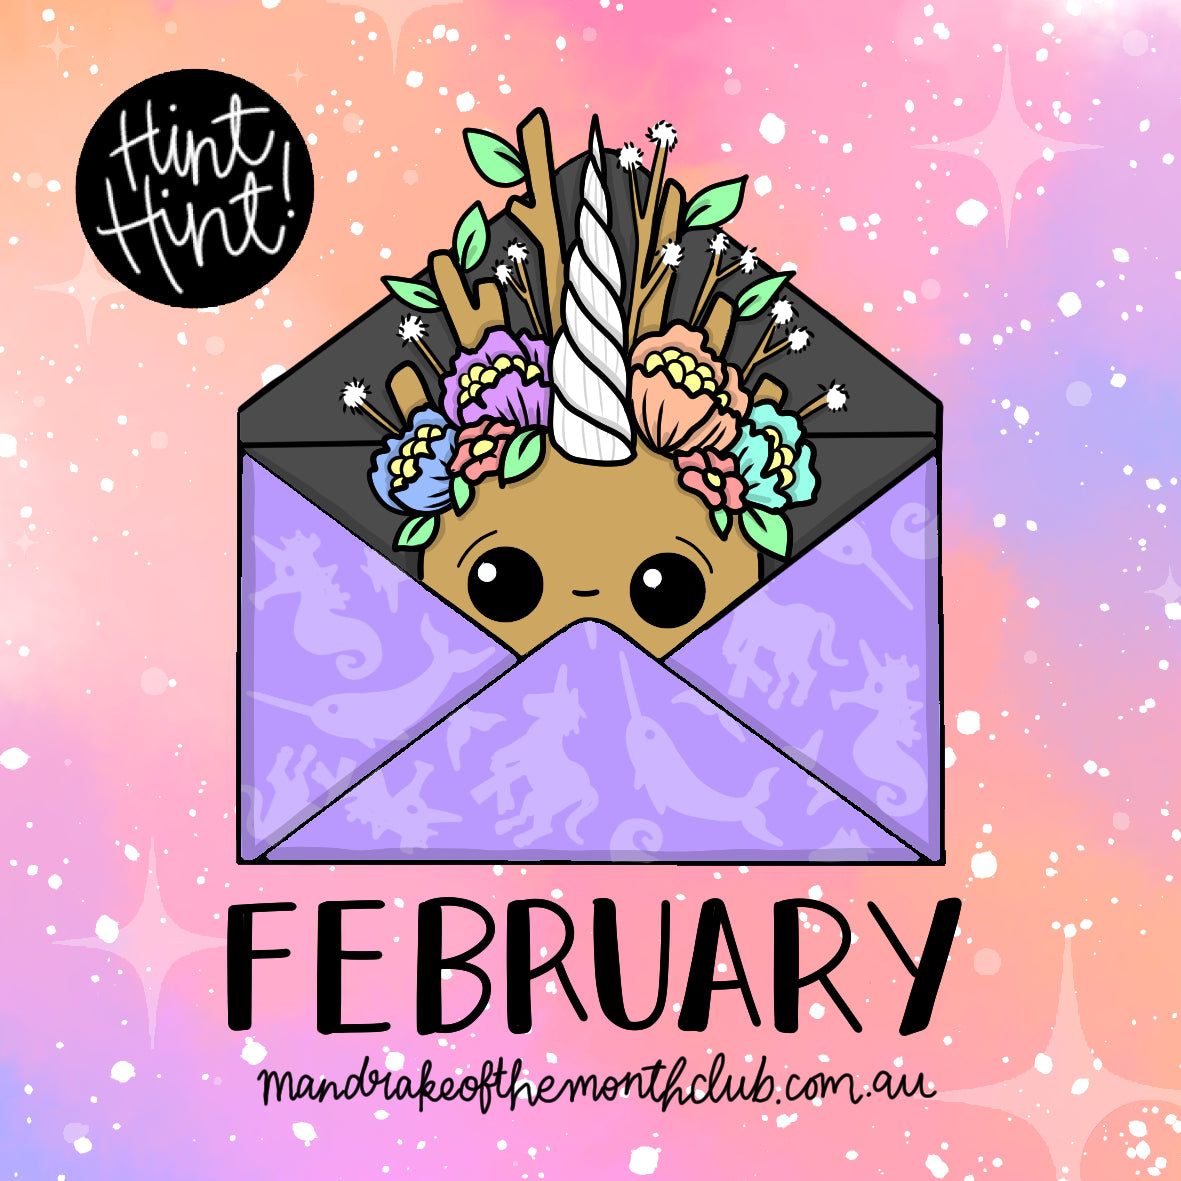 February Mandrake of the Month Club